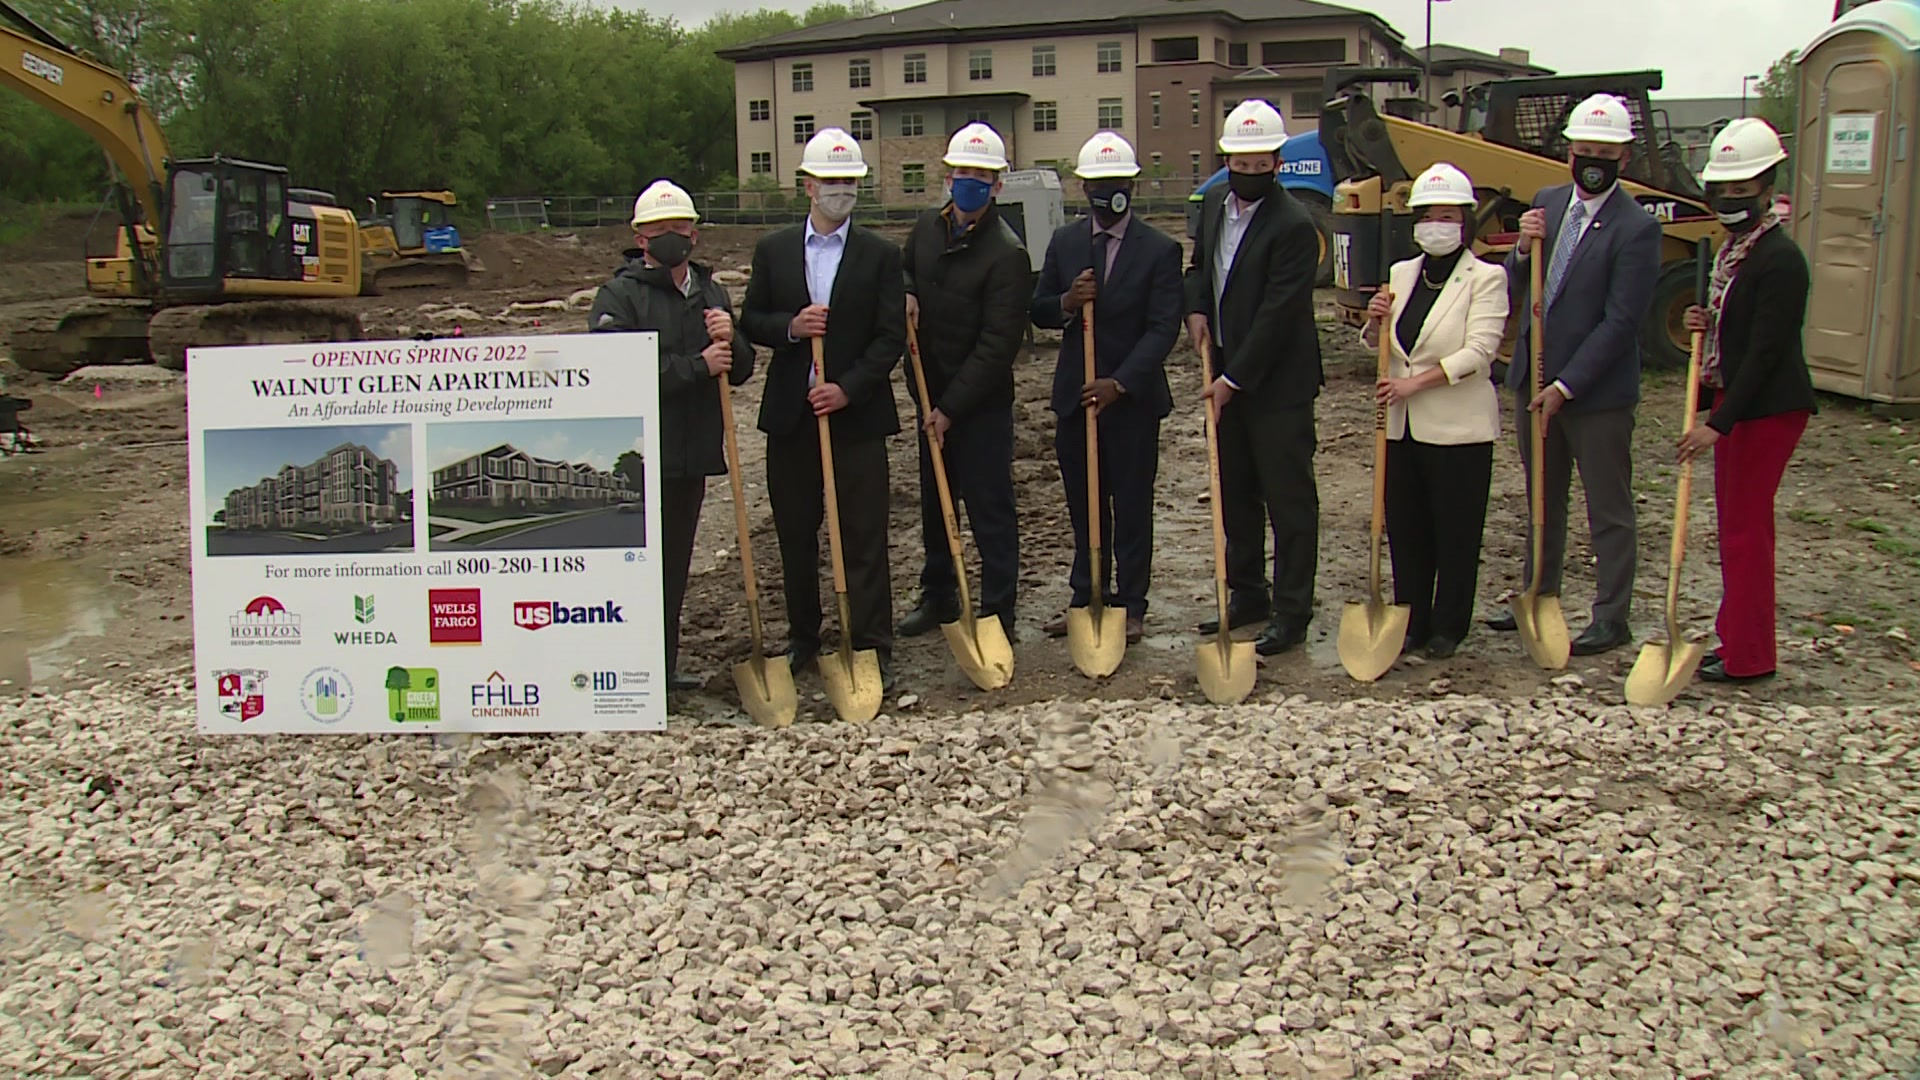 Groundbreaking ceremony held for new affordable housing development in Wauwatosa